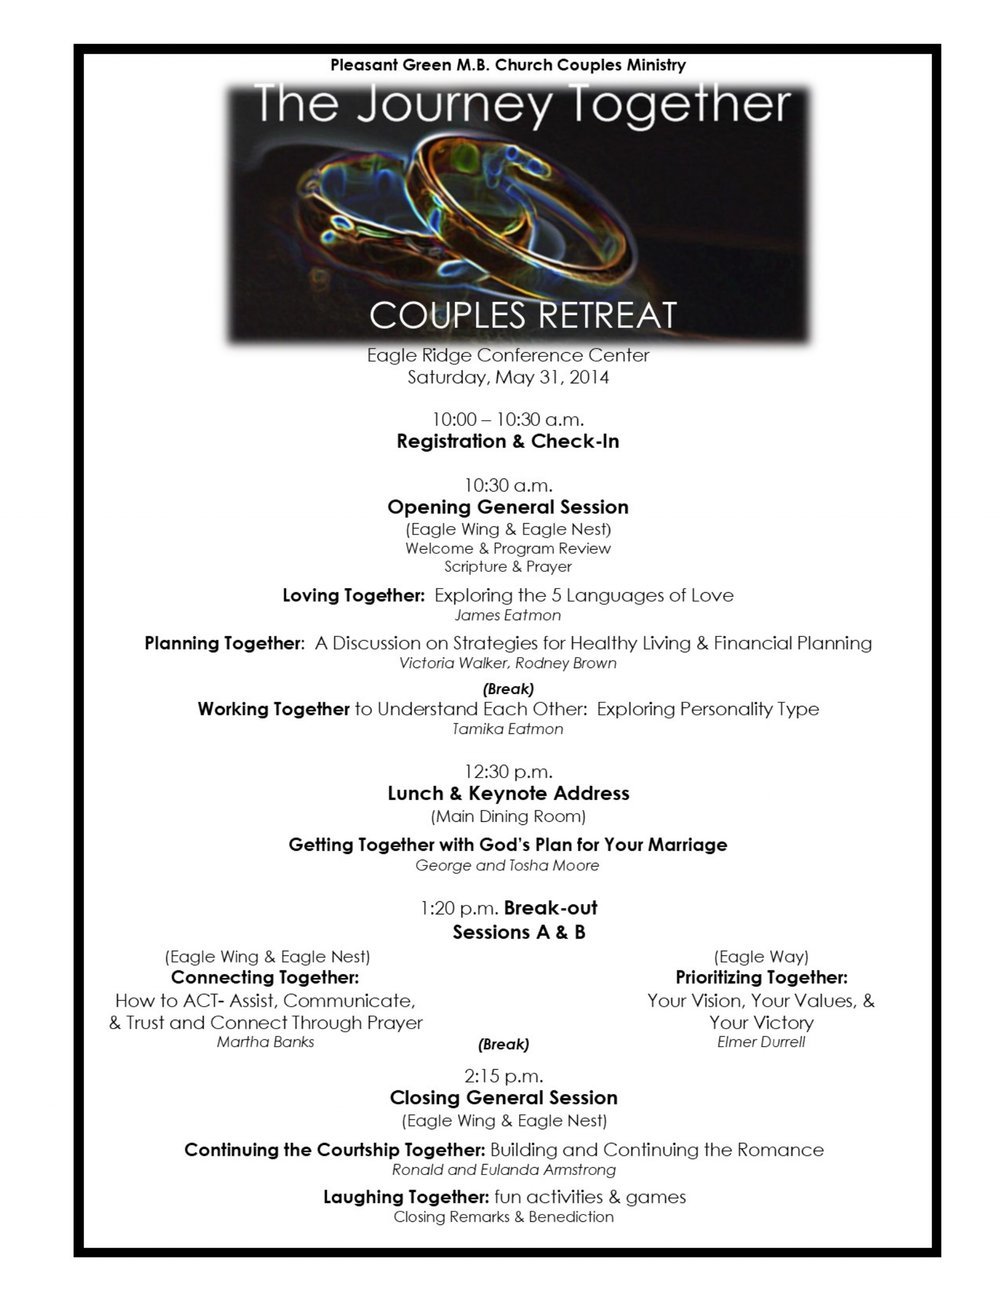 Couples Retreat - The Journey Together.jpg